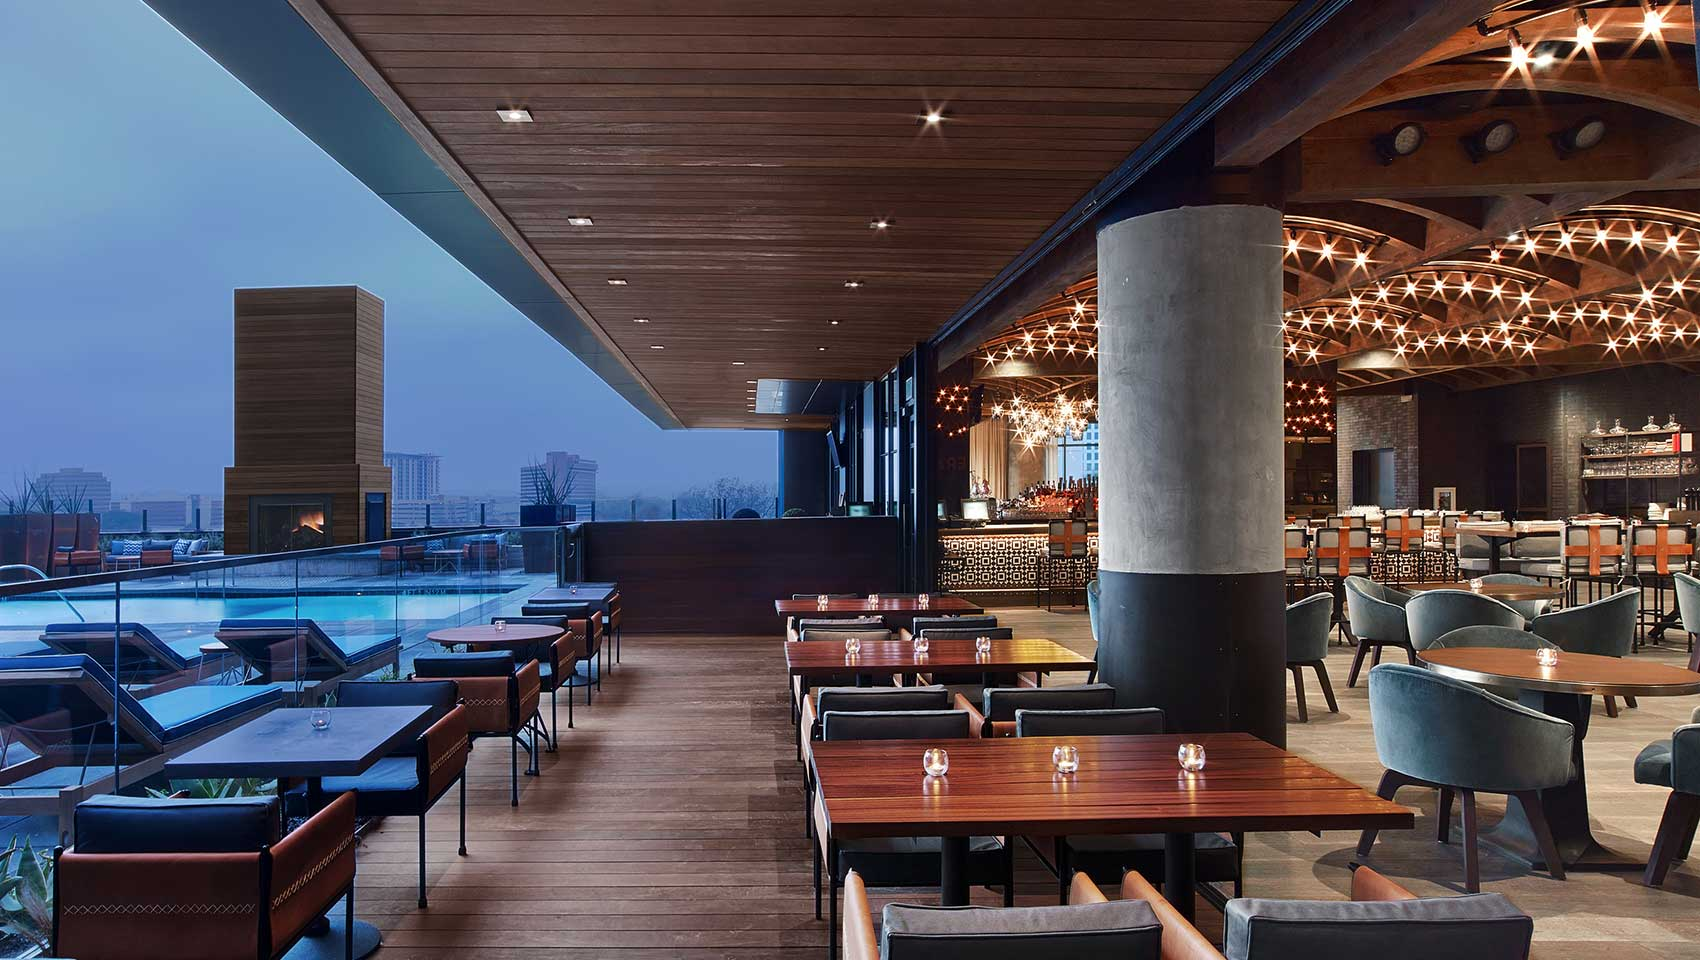 geraldines-outdoor-bar-and-pool-view-a77c1803